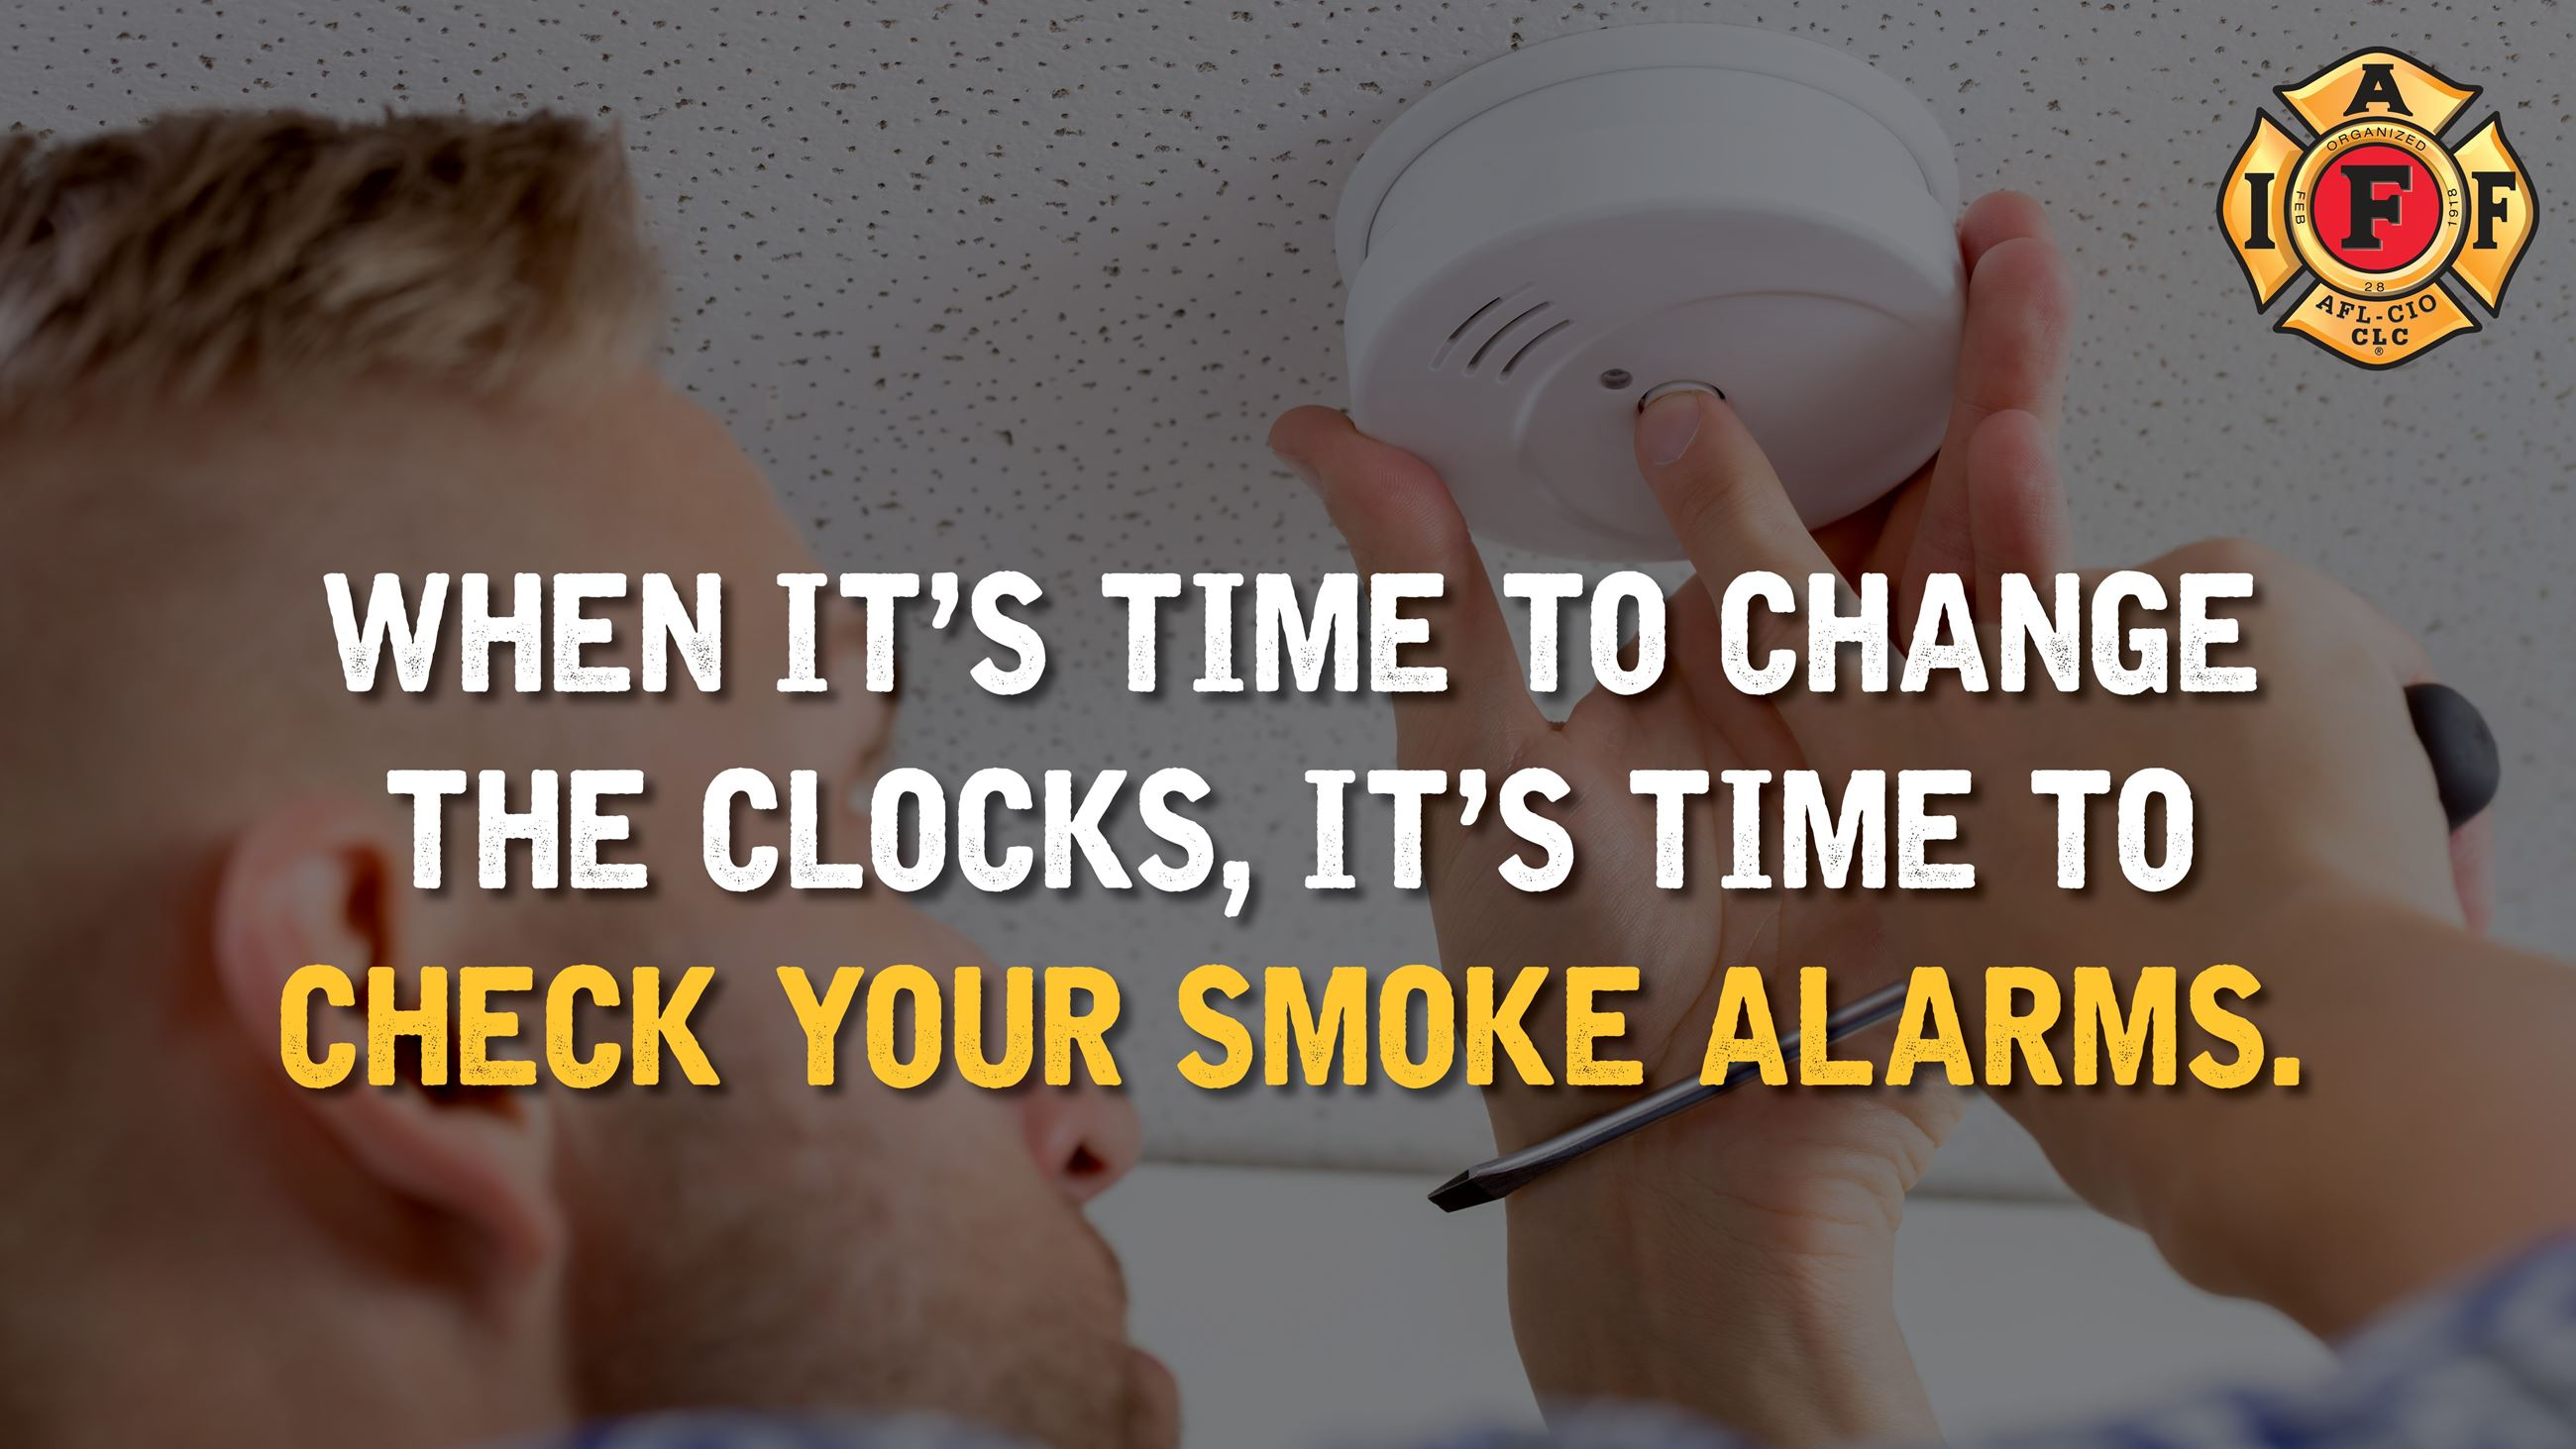 When you change your clocks, change your smoke alarm batteries.